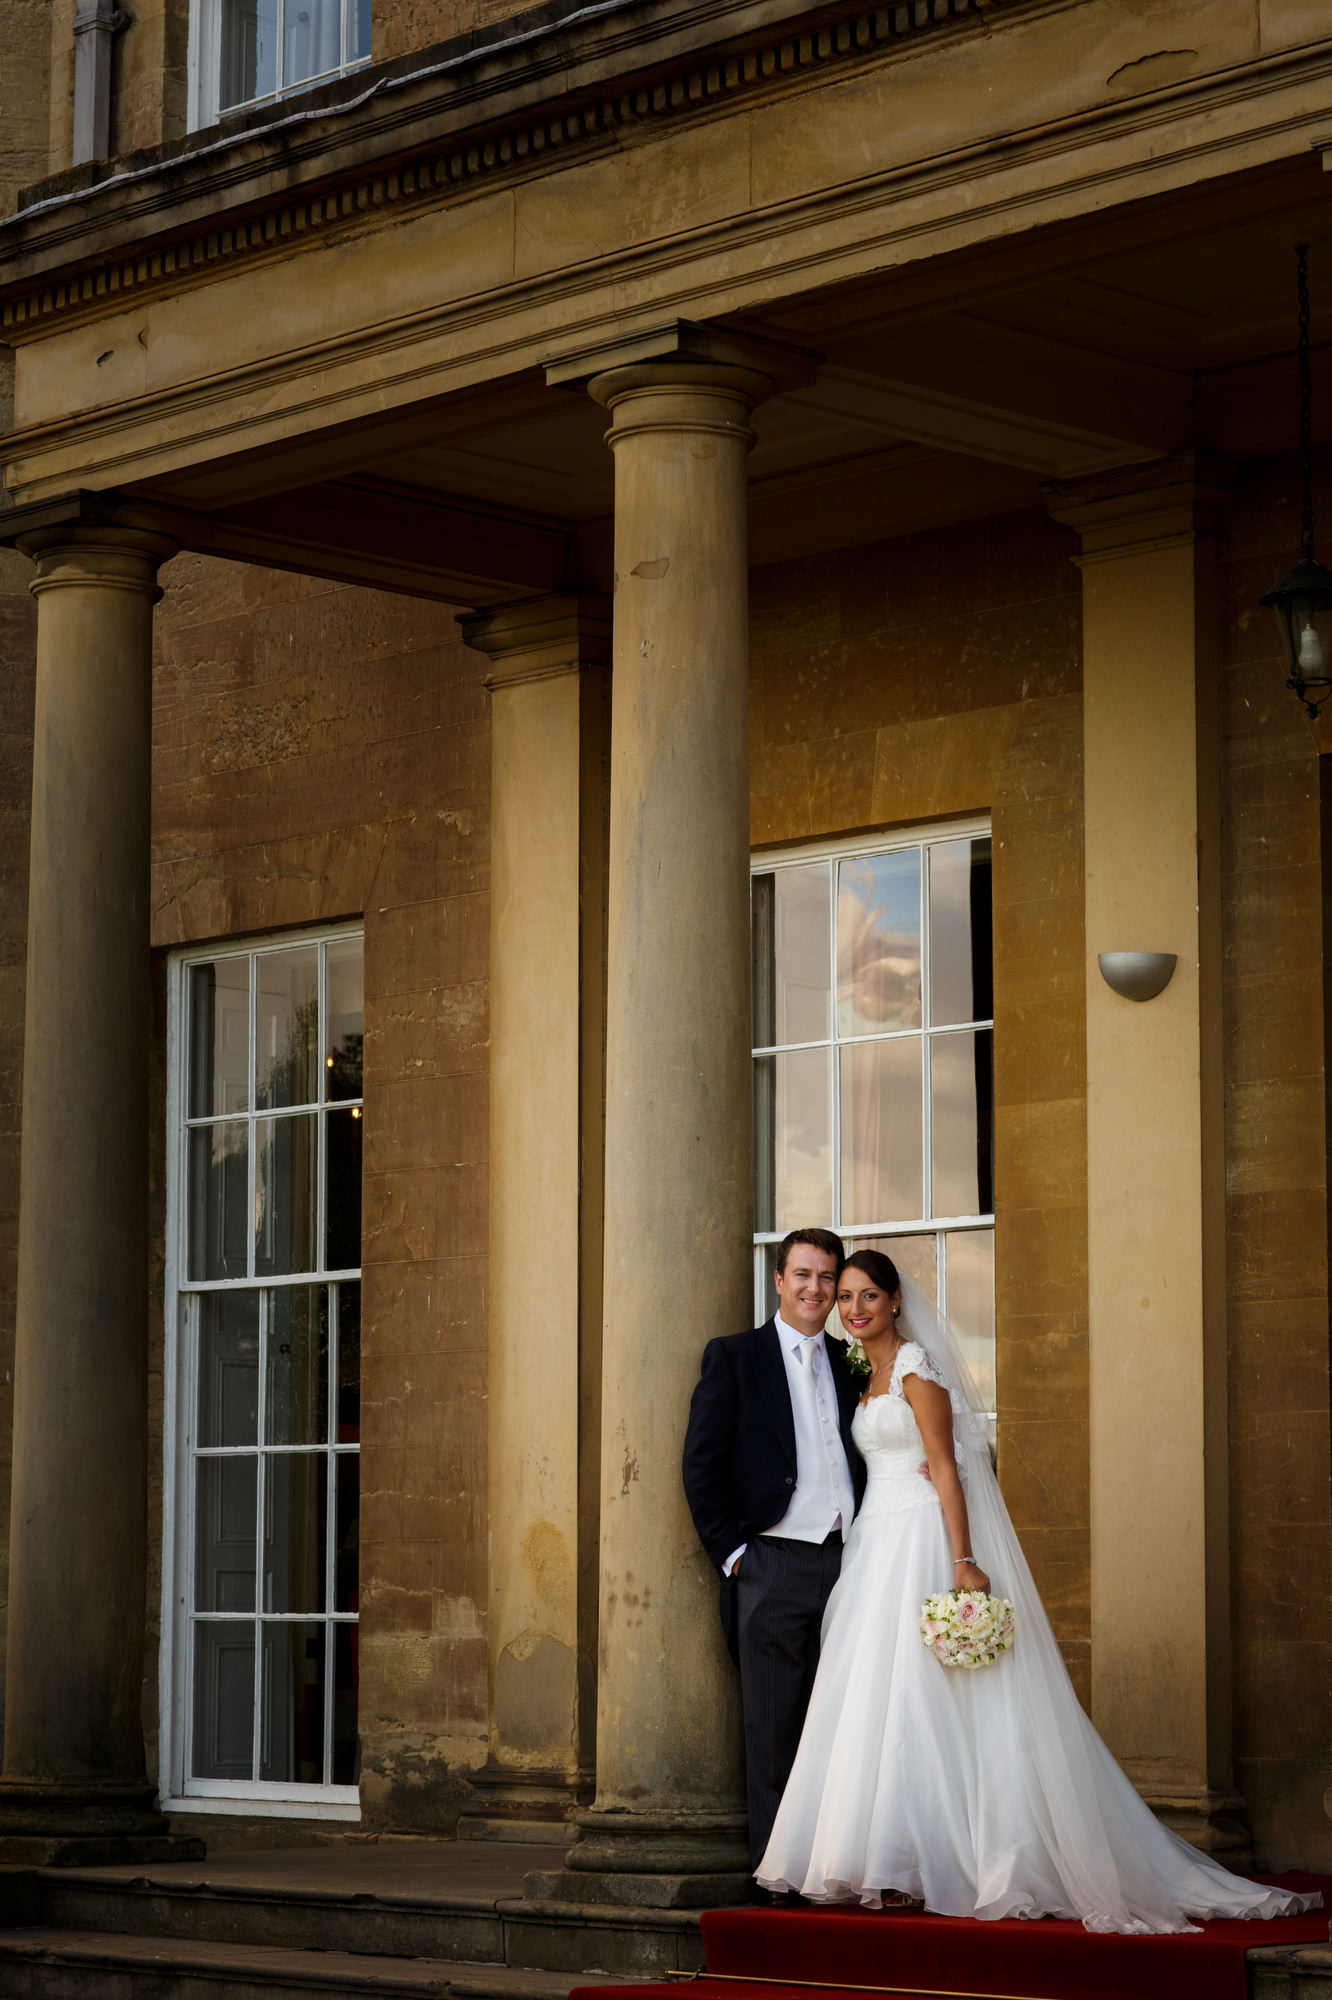 Standing couple portrait at Rudding Park Hotel UK - photo by Jeff Ascough